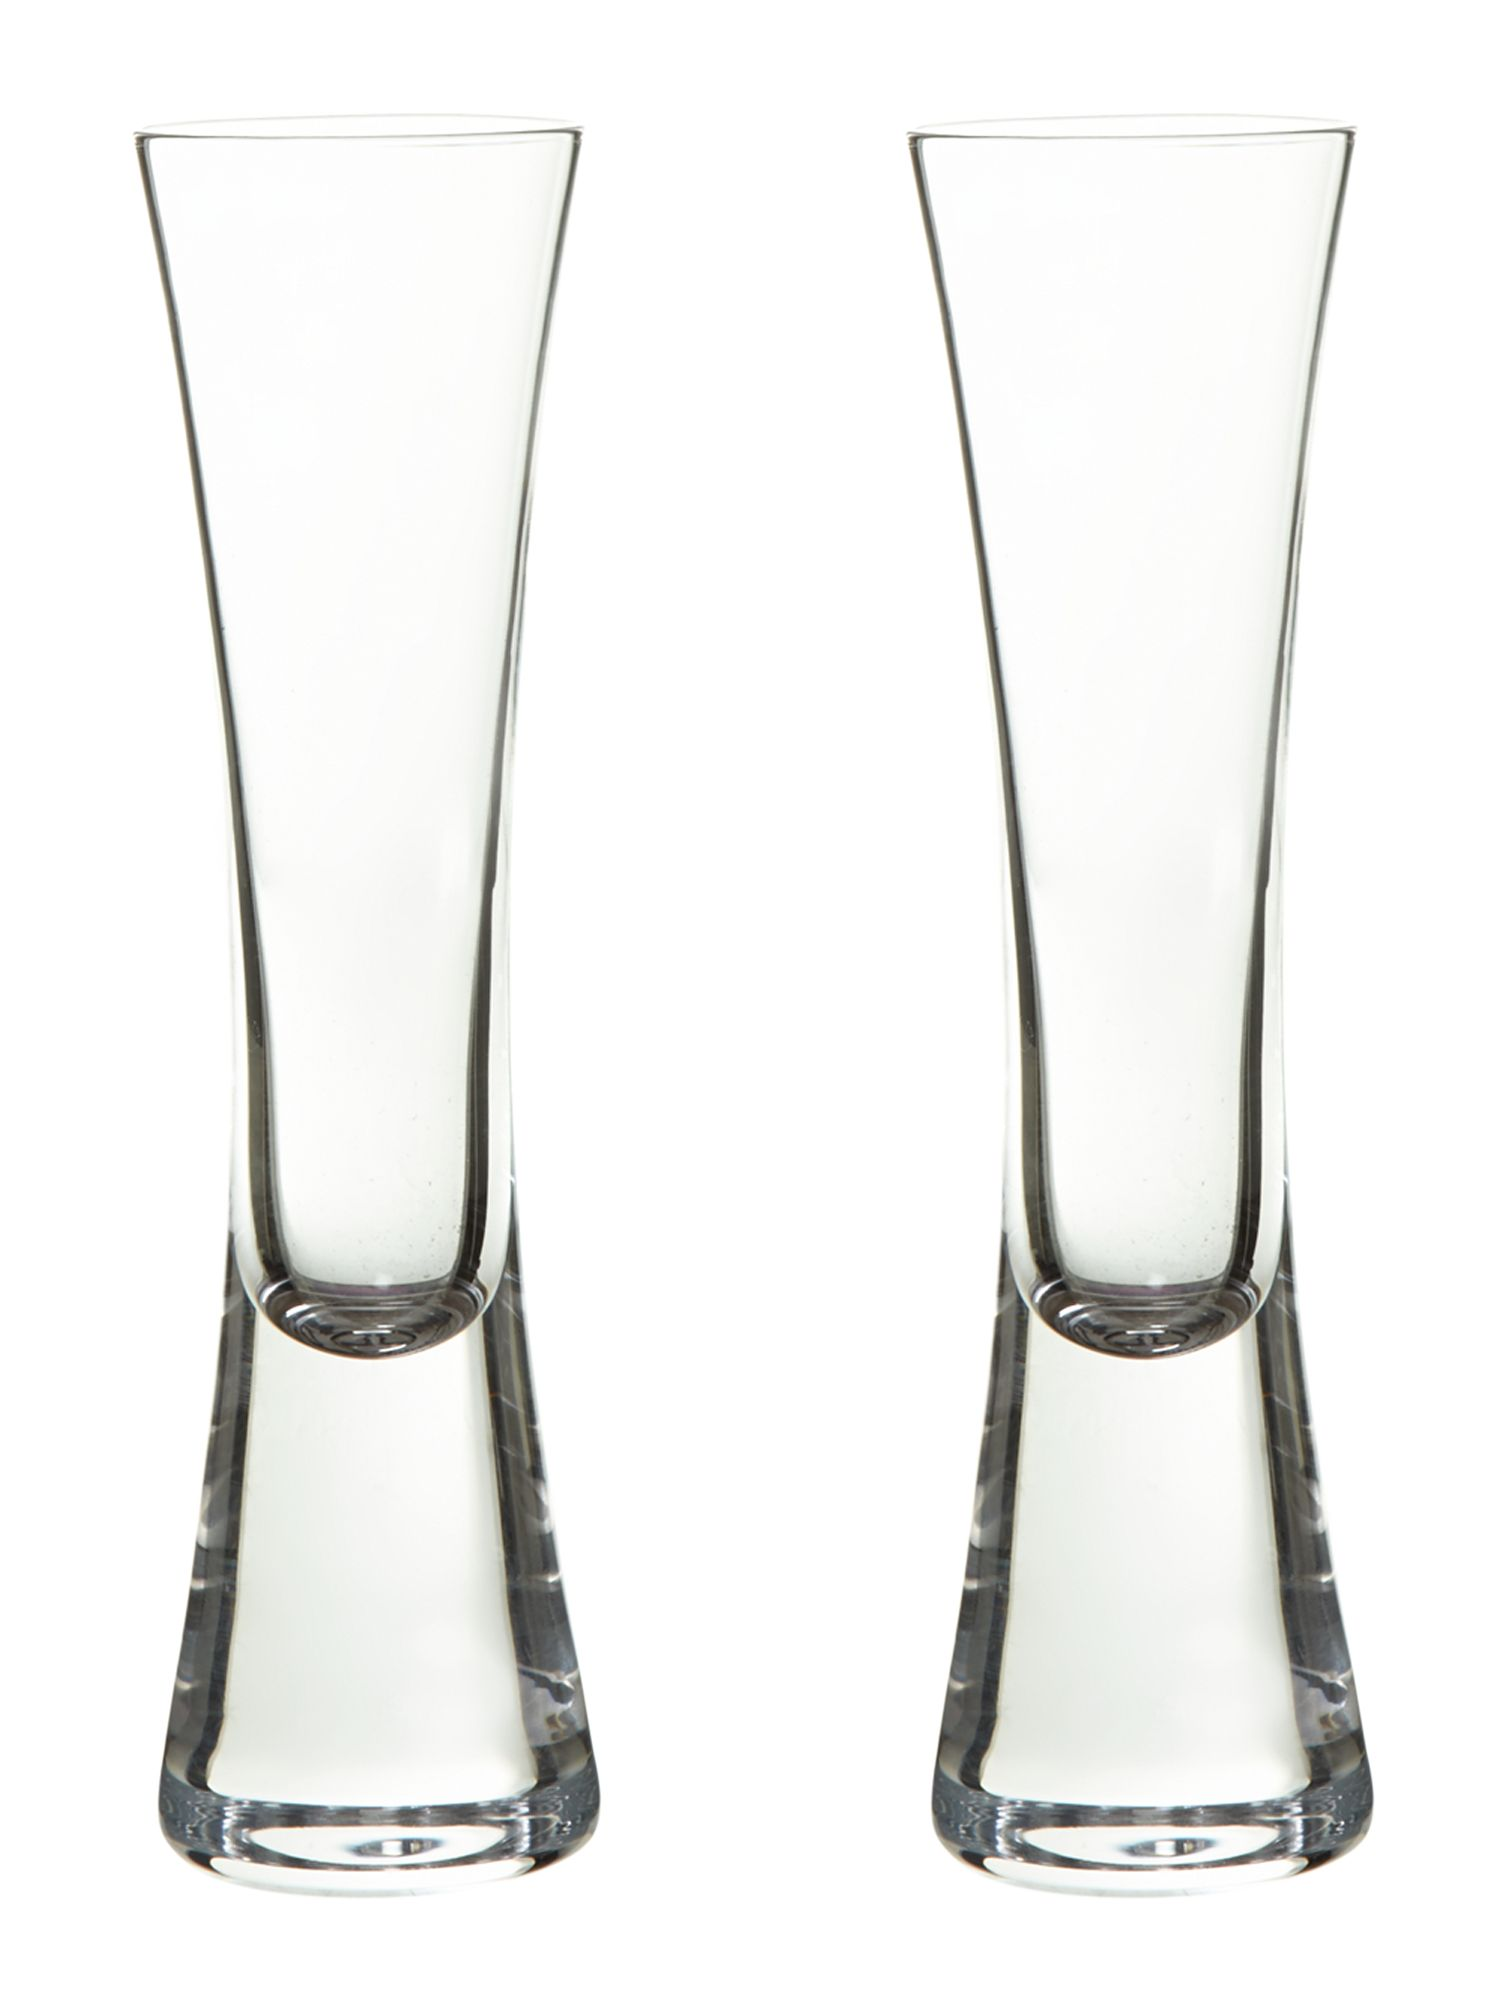 Moya liqueur glass set of 2